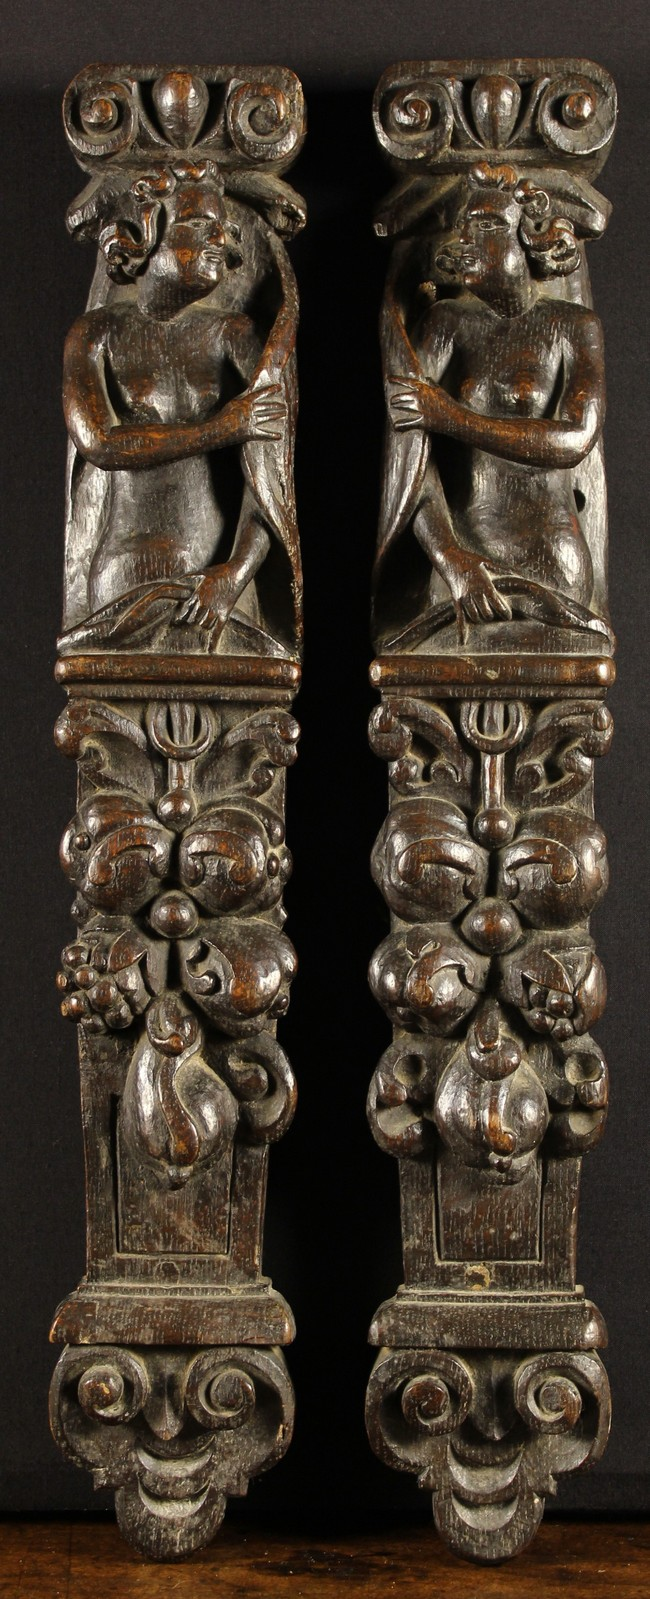 Lot 42 - A Pair of 17th Century Flemish Oak Caryatids carved with figures rising above pendant garlands of